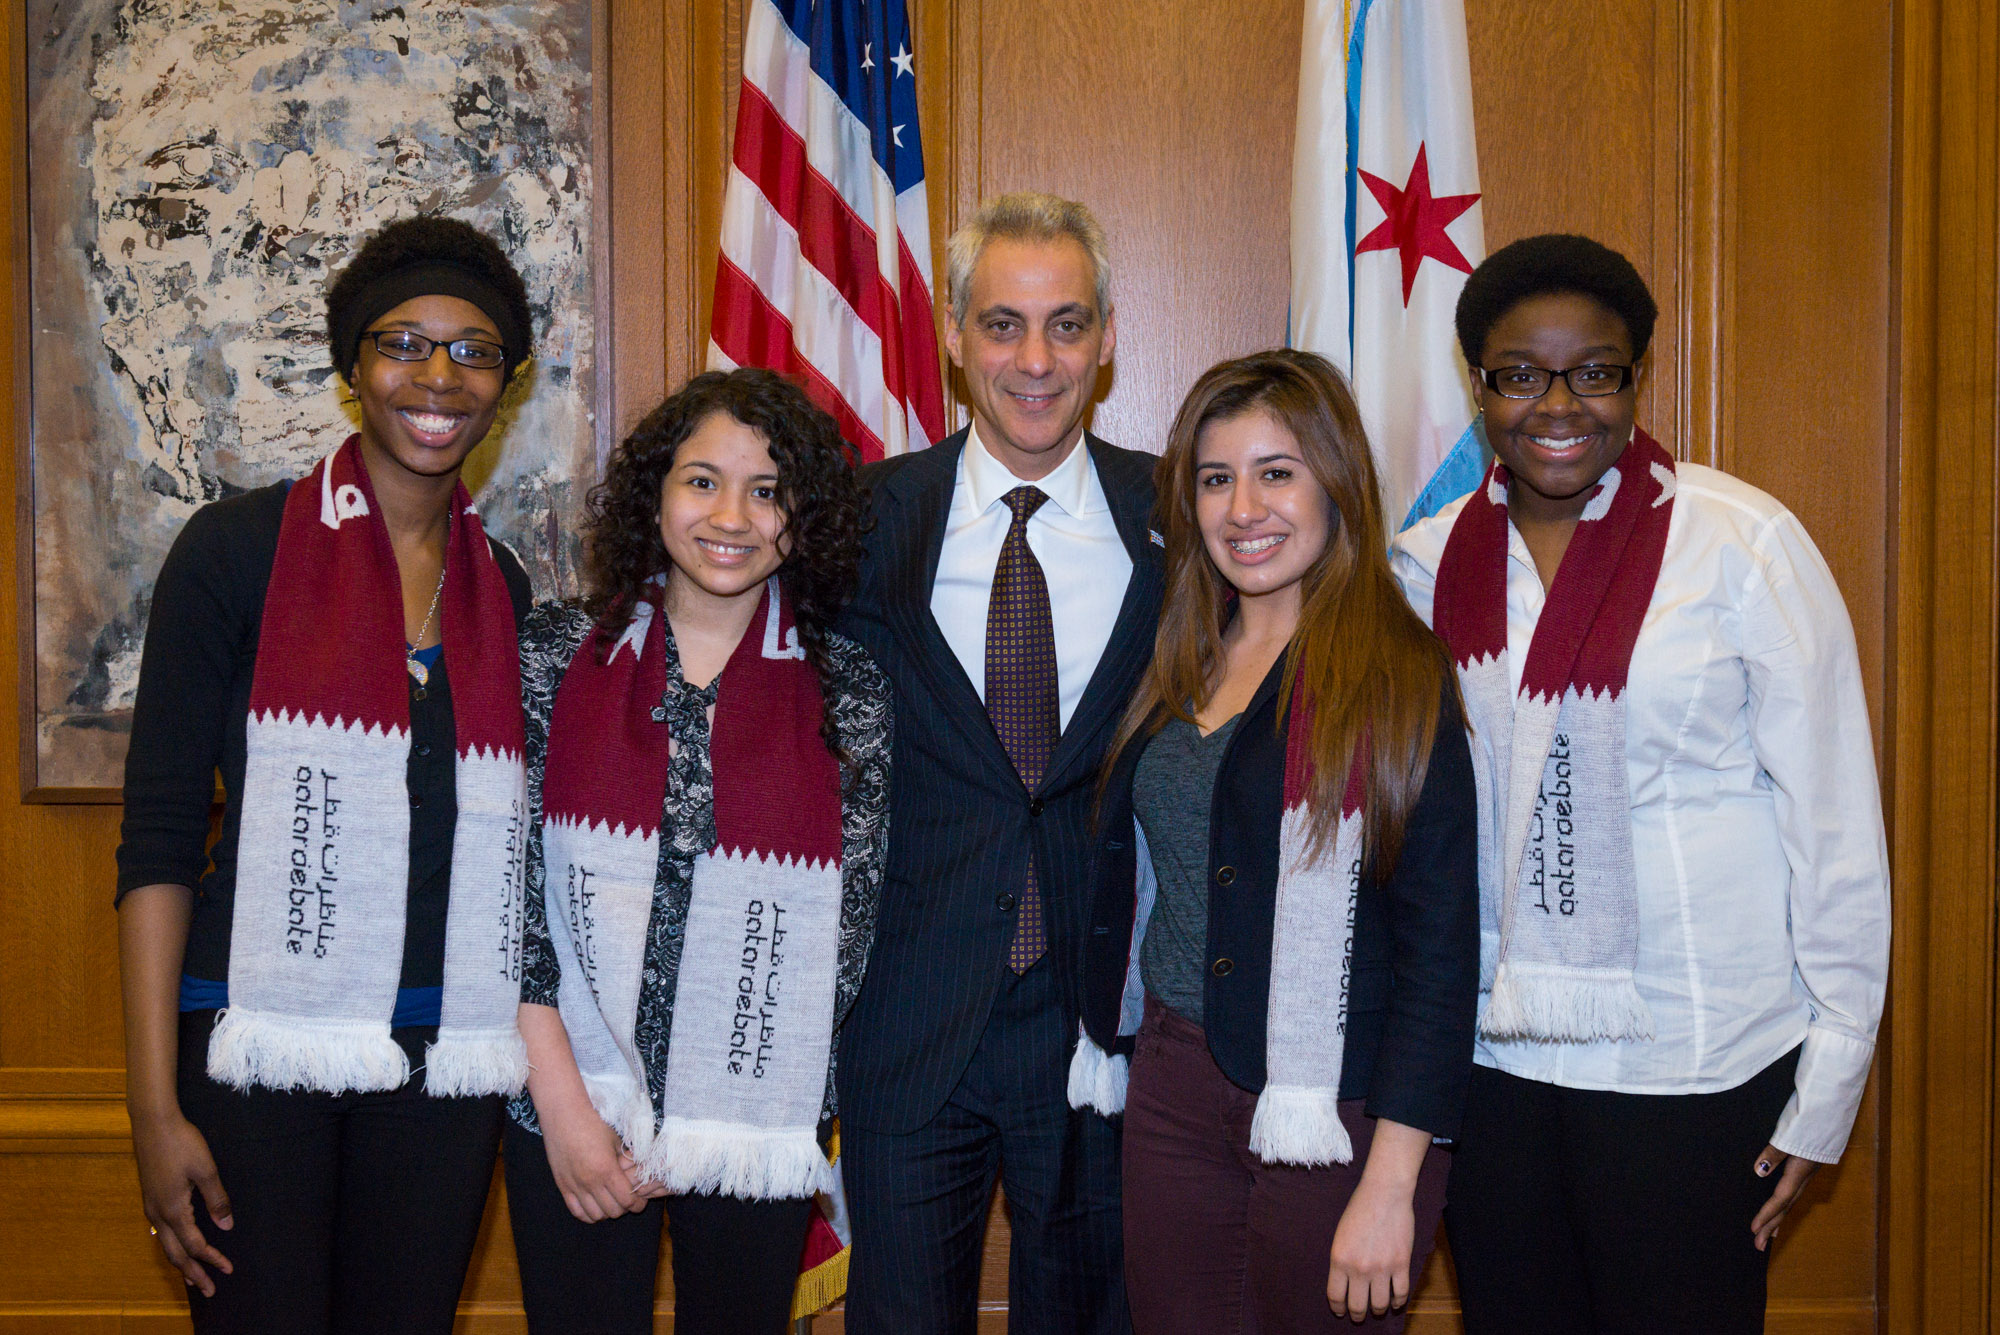 Mayor Emanuel meets and congratulates students from Lindblom Math and Science Academy on their recent participation in the Qatar Debate World Championship